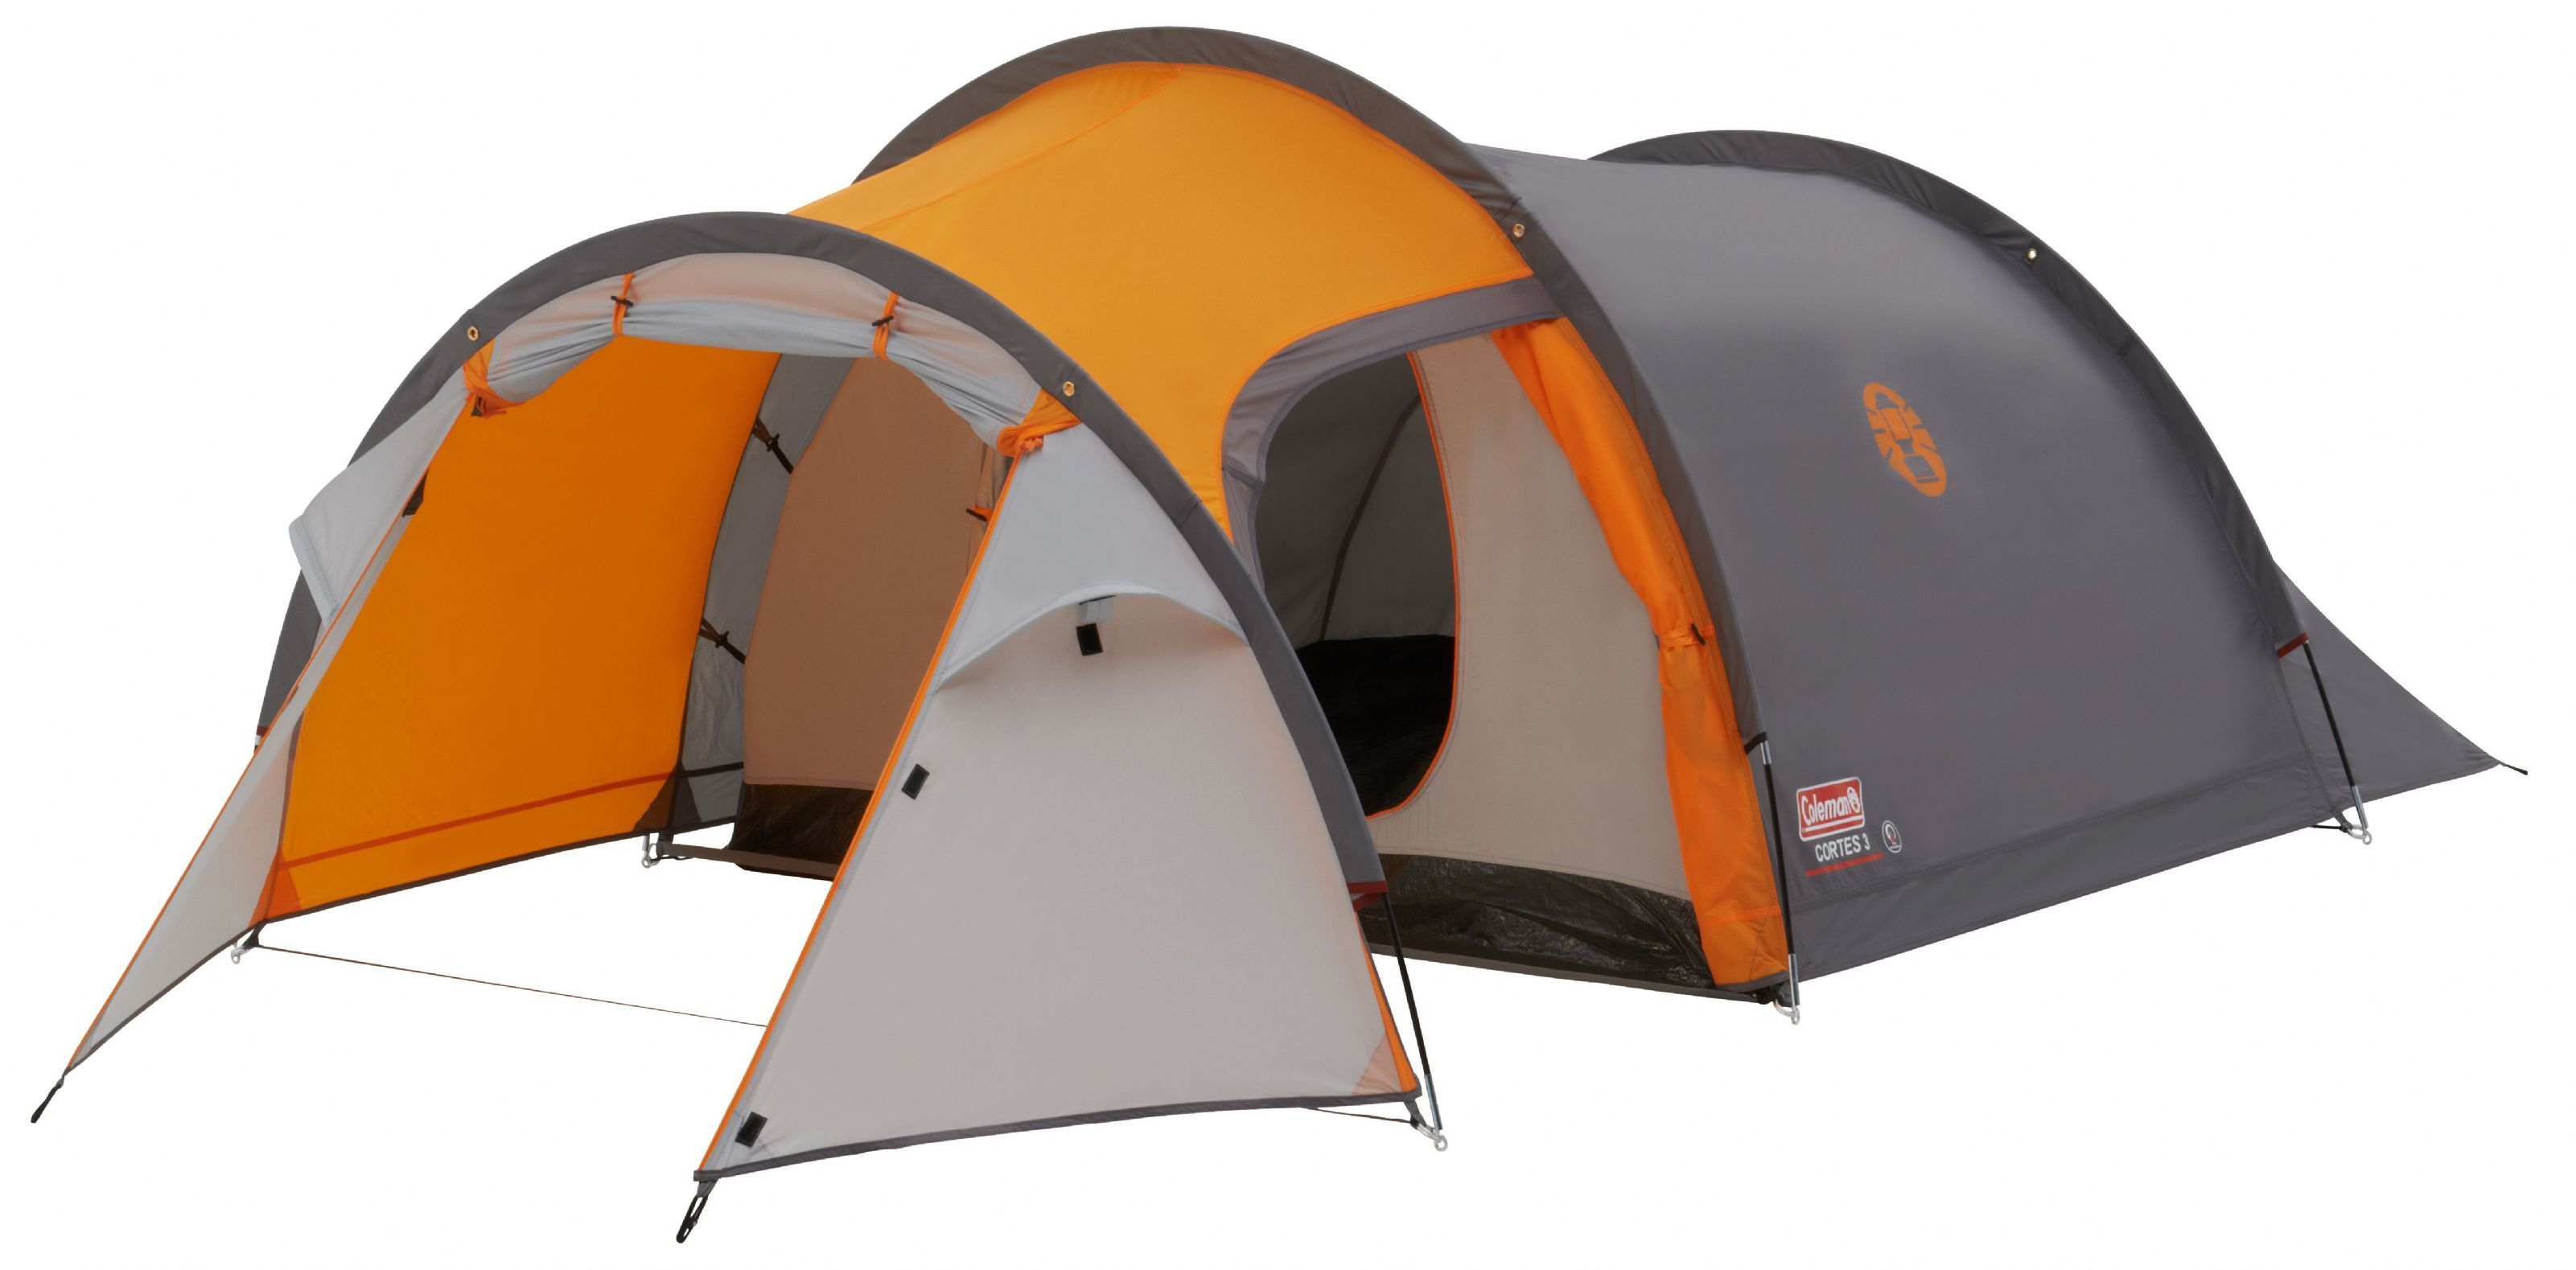 Outdoor C&ing Direct is the UK`s outdoor and c&ing store specializing in c&ing equipment like Gears Tents and more at cheap prices.  sc 1 st  Pinterest : family tunnel tents uk - memphite.com